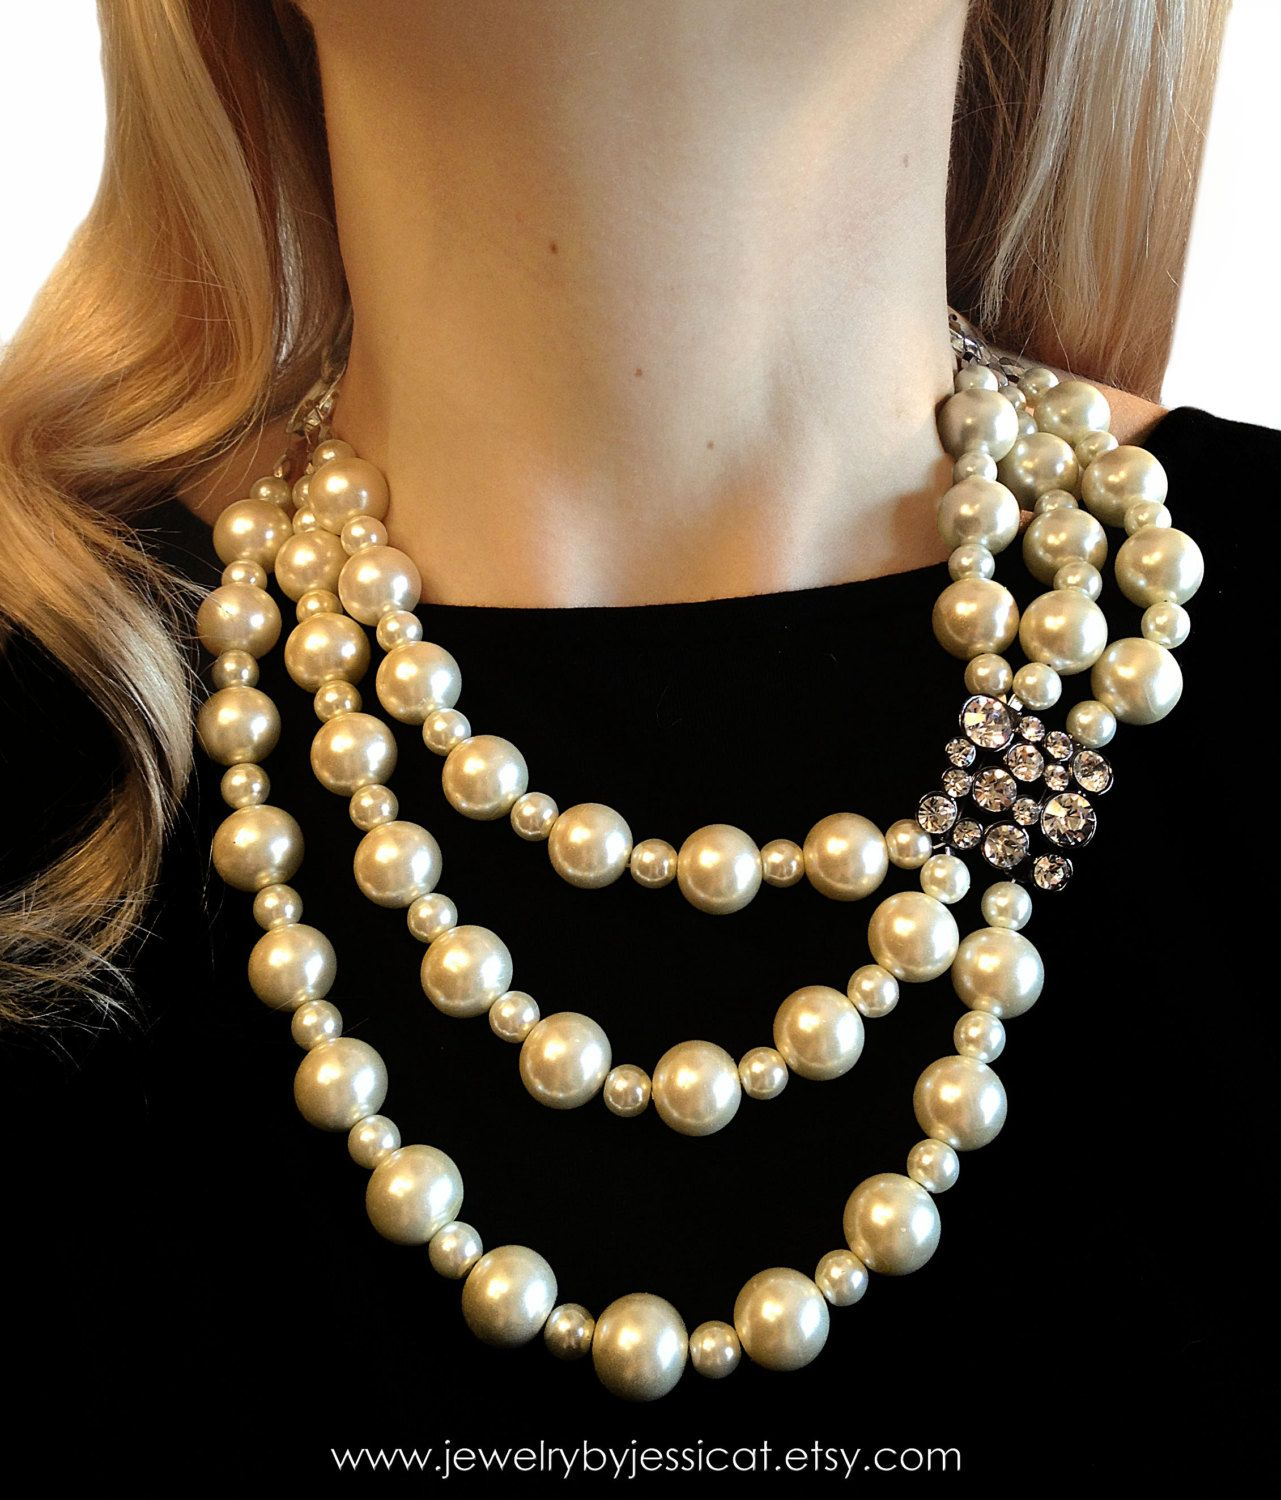 VINTAGE Statement Necklace, Ivory, Antique, Broach, Bridal, Holiday, Multi-strand, Mod, Crystals, Pearls, Jewelry by Jessica Theresa. $60.00, via Etsy.